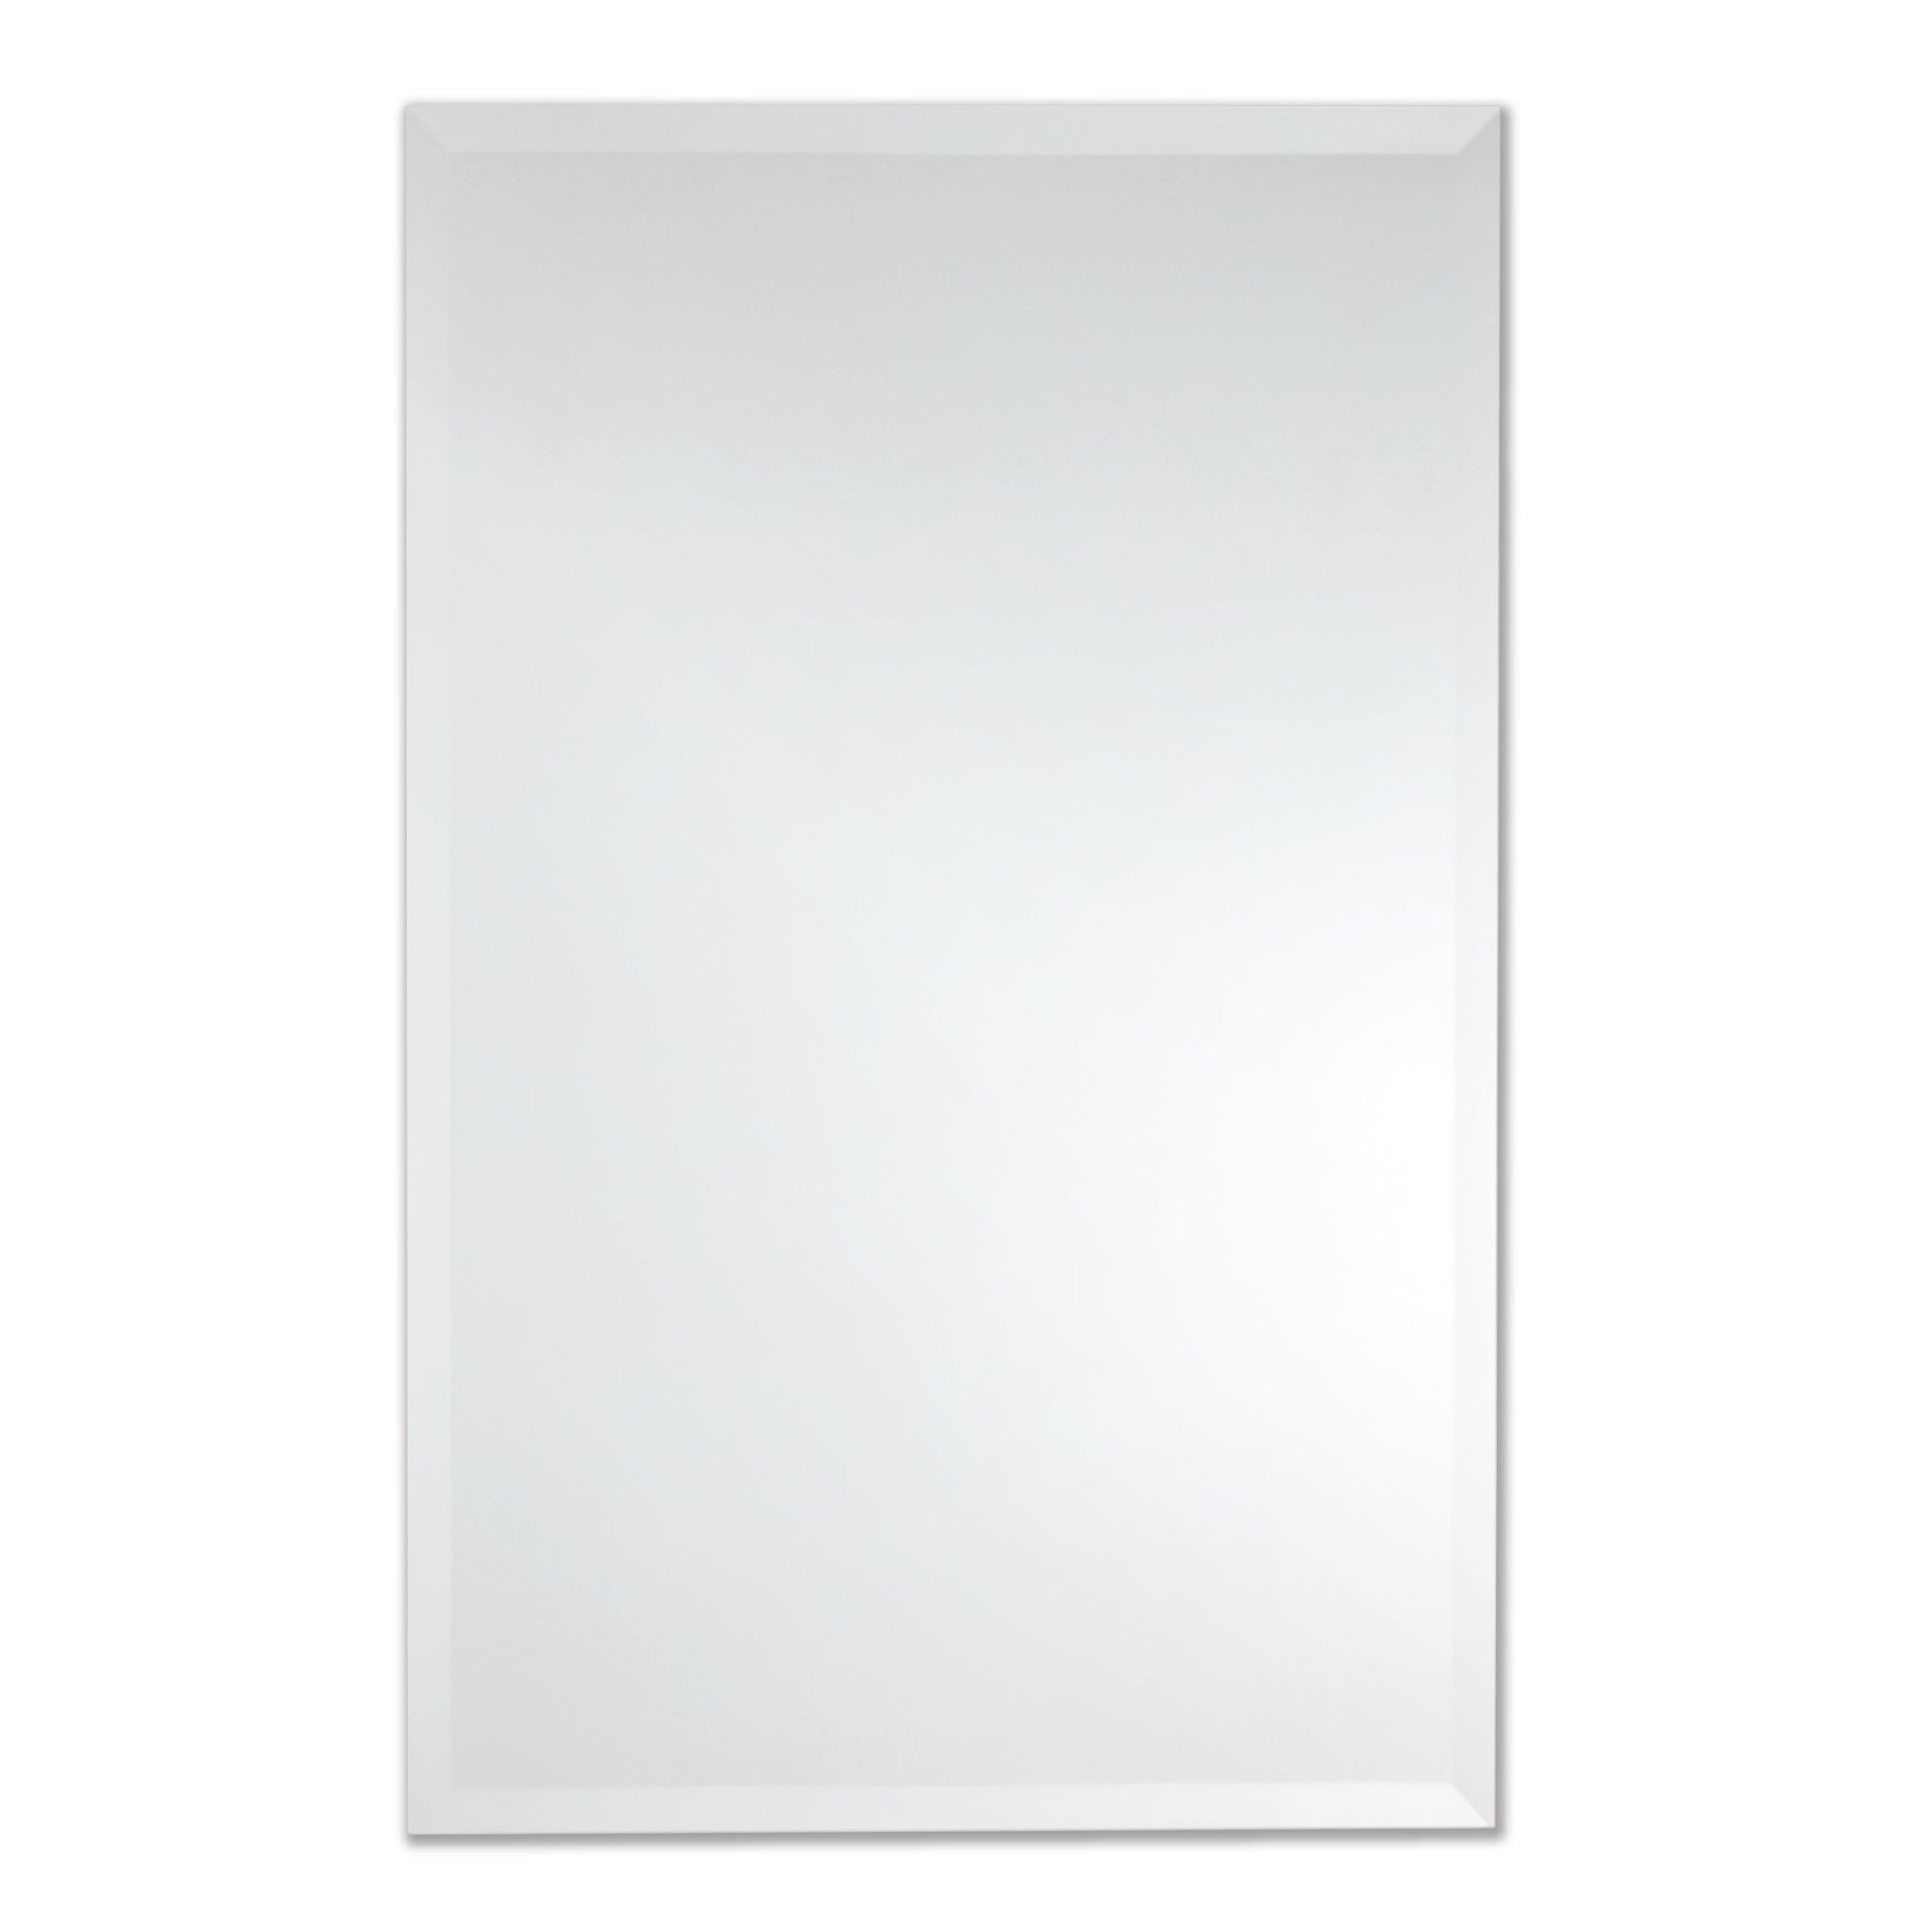 Best frameless wall mirrors for bathroom | Amazon.com